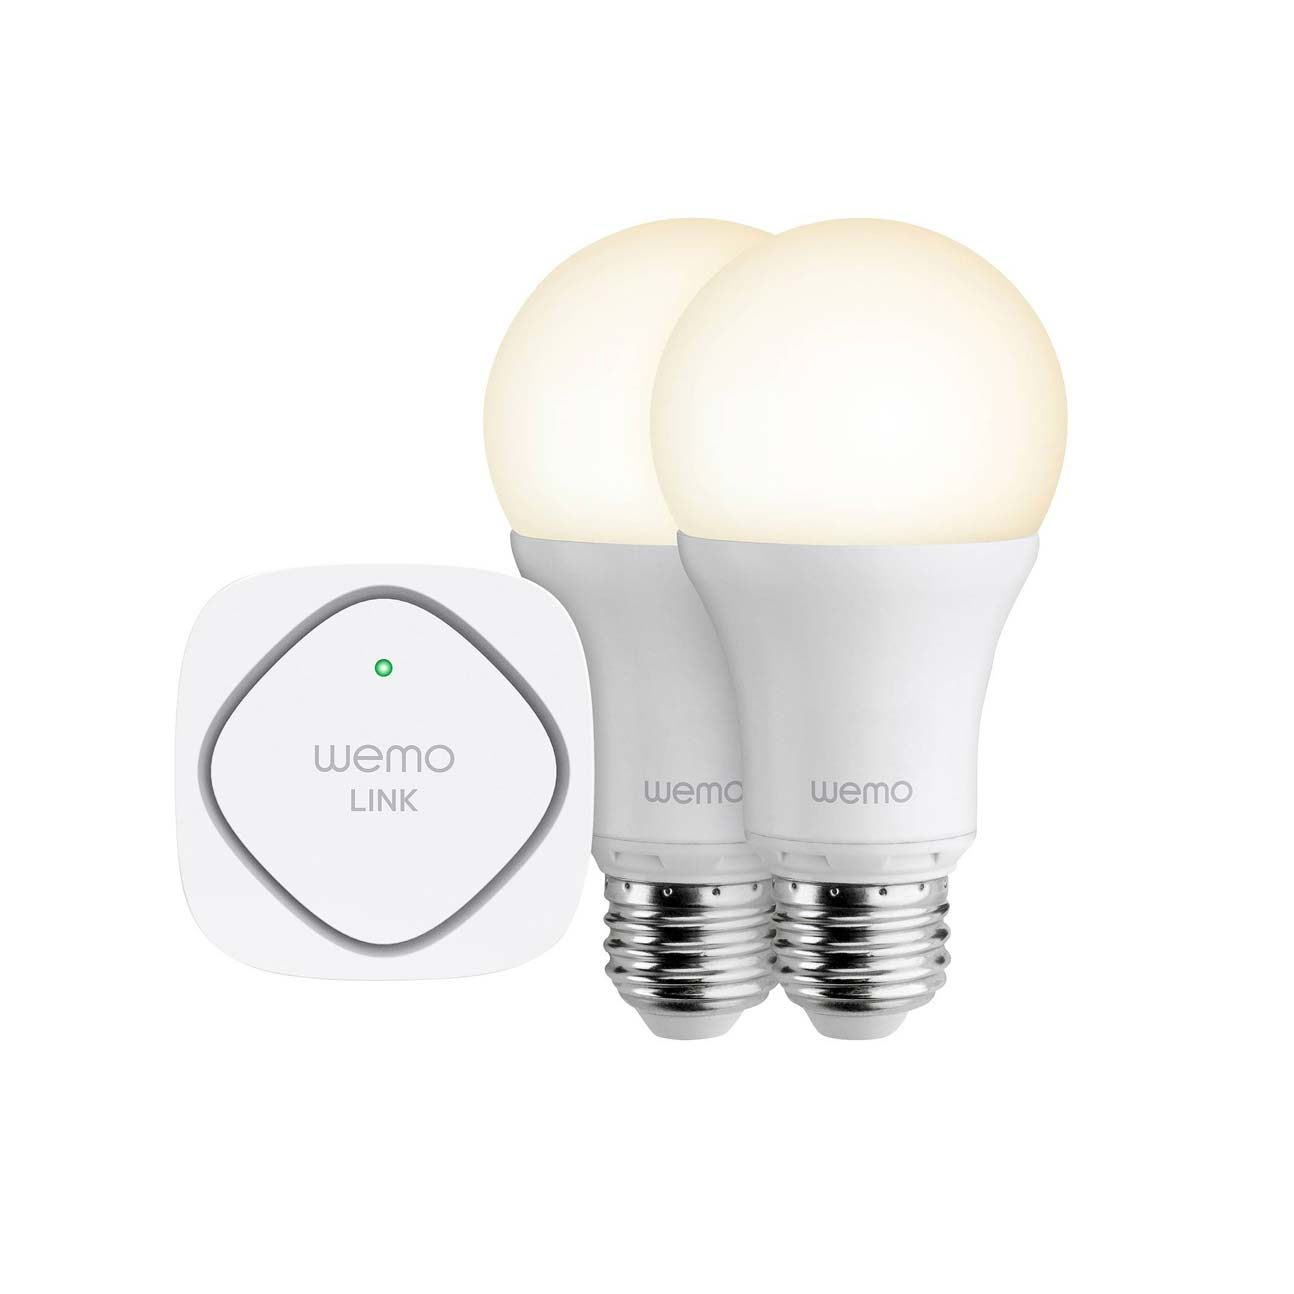 Smart light bulb smarter house Smart light bulbs